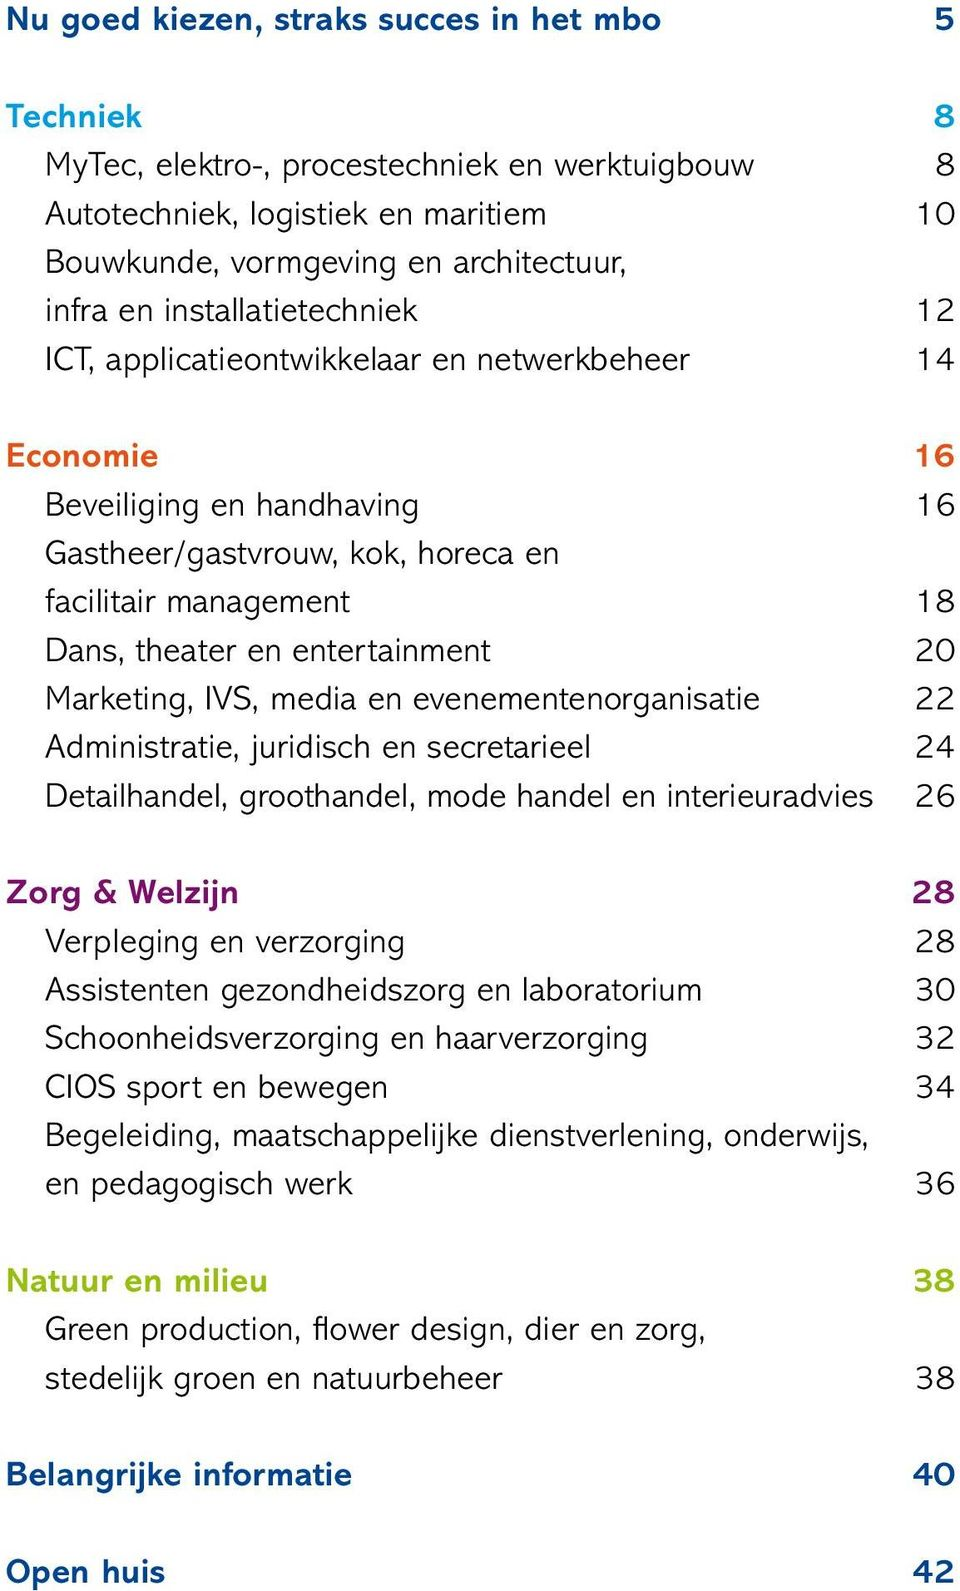 entertainment 20 Marketing, IVS, media en evenementenorganisatie 22 Administratie, juridisch en secretarieel 24 Detailhandel, groothandel, mode handel en interieuradvies 26 Zorg & Welzijn 28